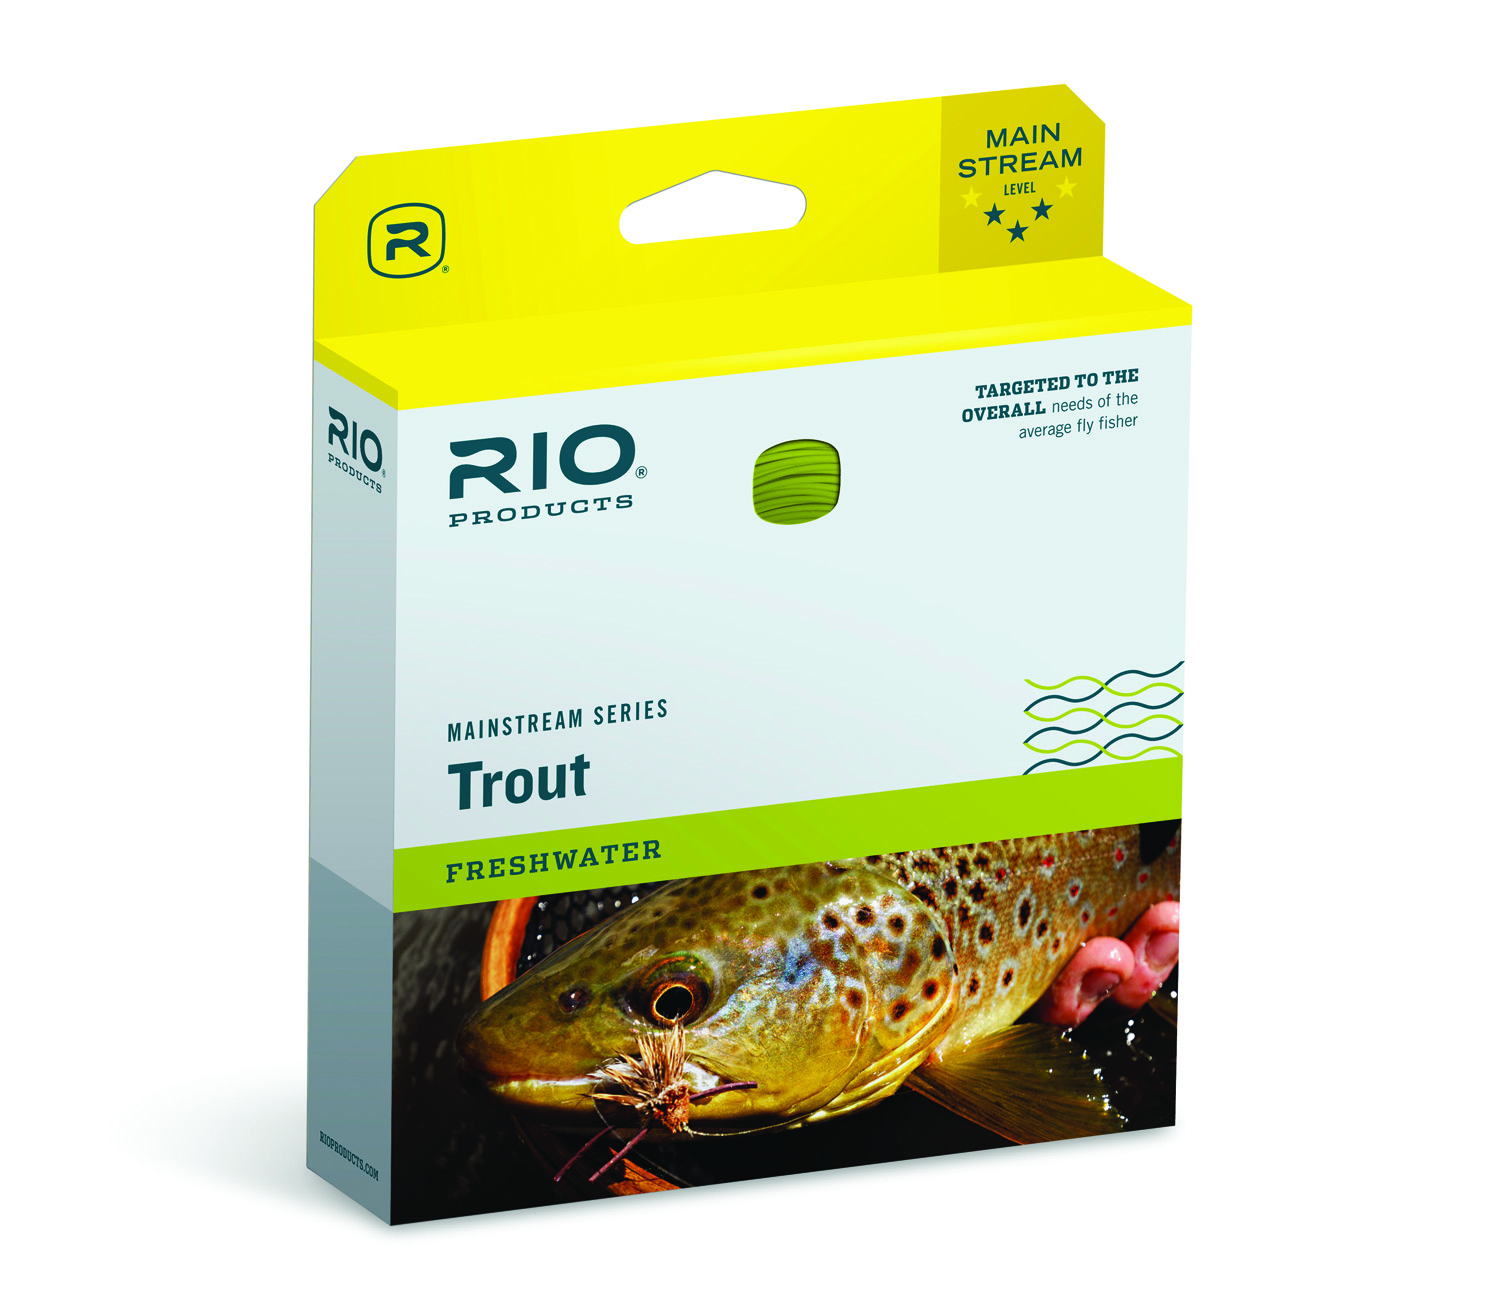 trout salmon BEST QUALITY double zinger fly fishing